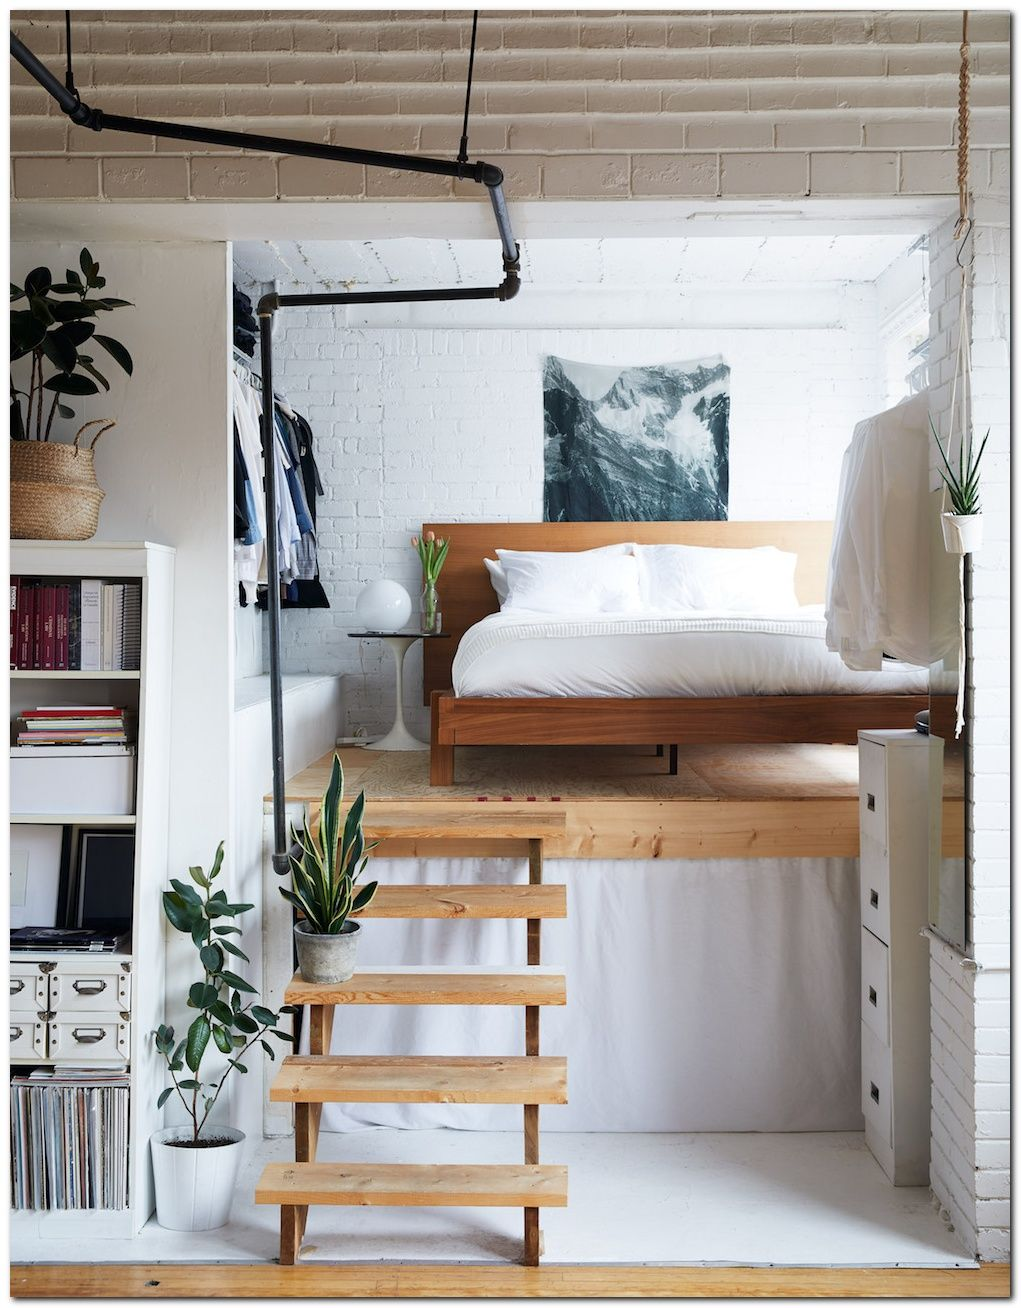 51 Smart ideas for Small Apartment 51